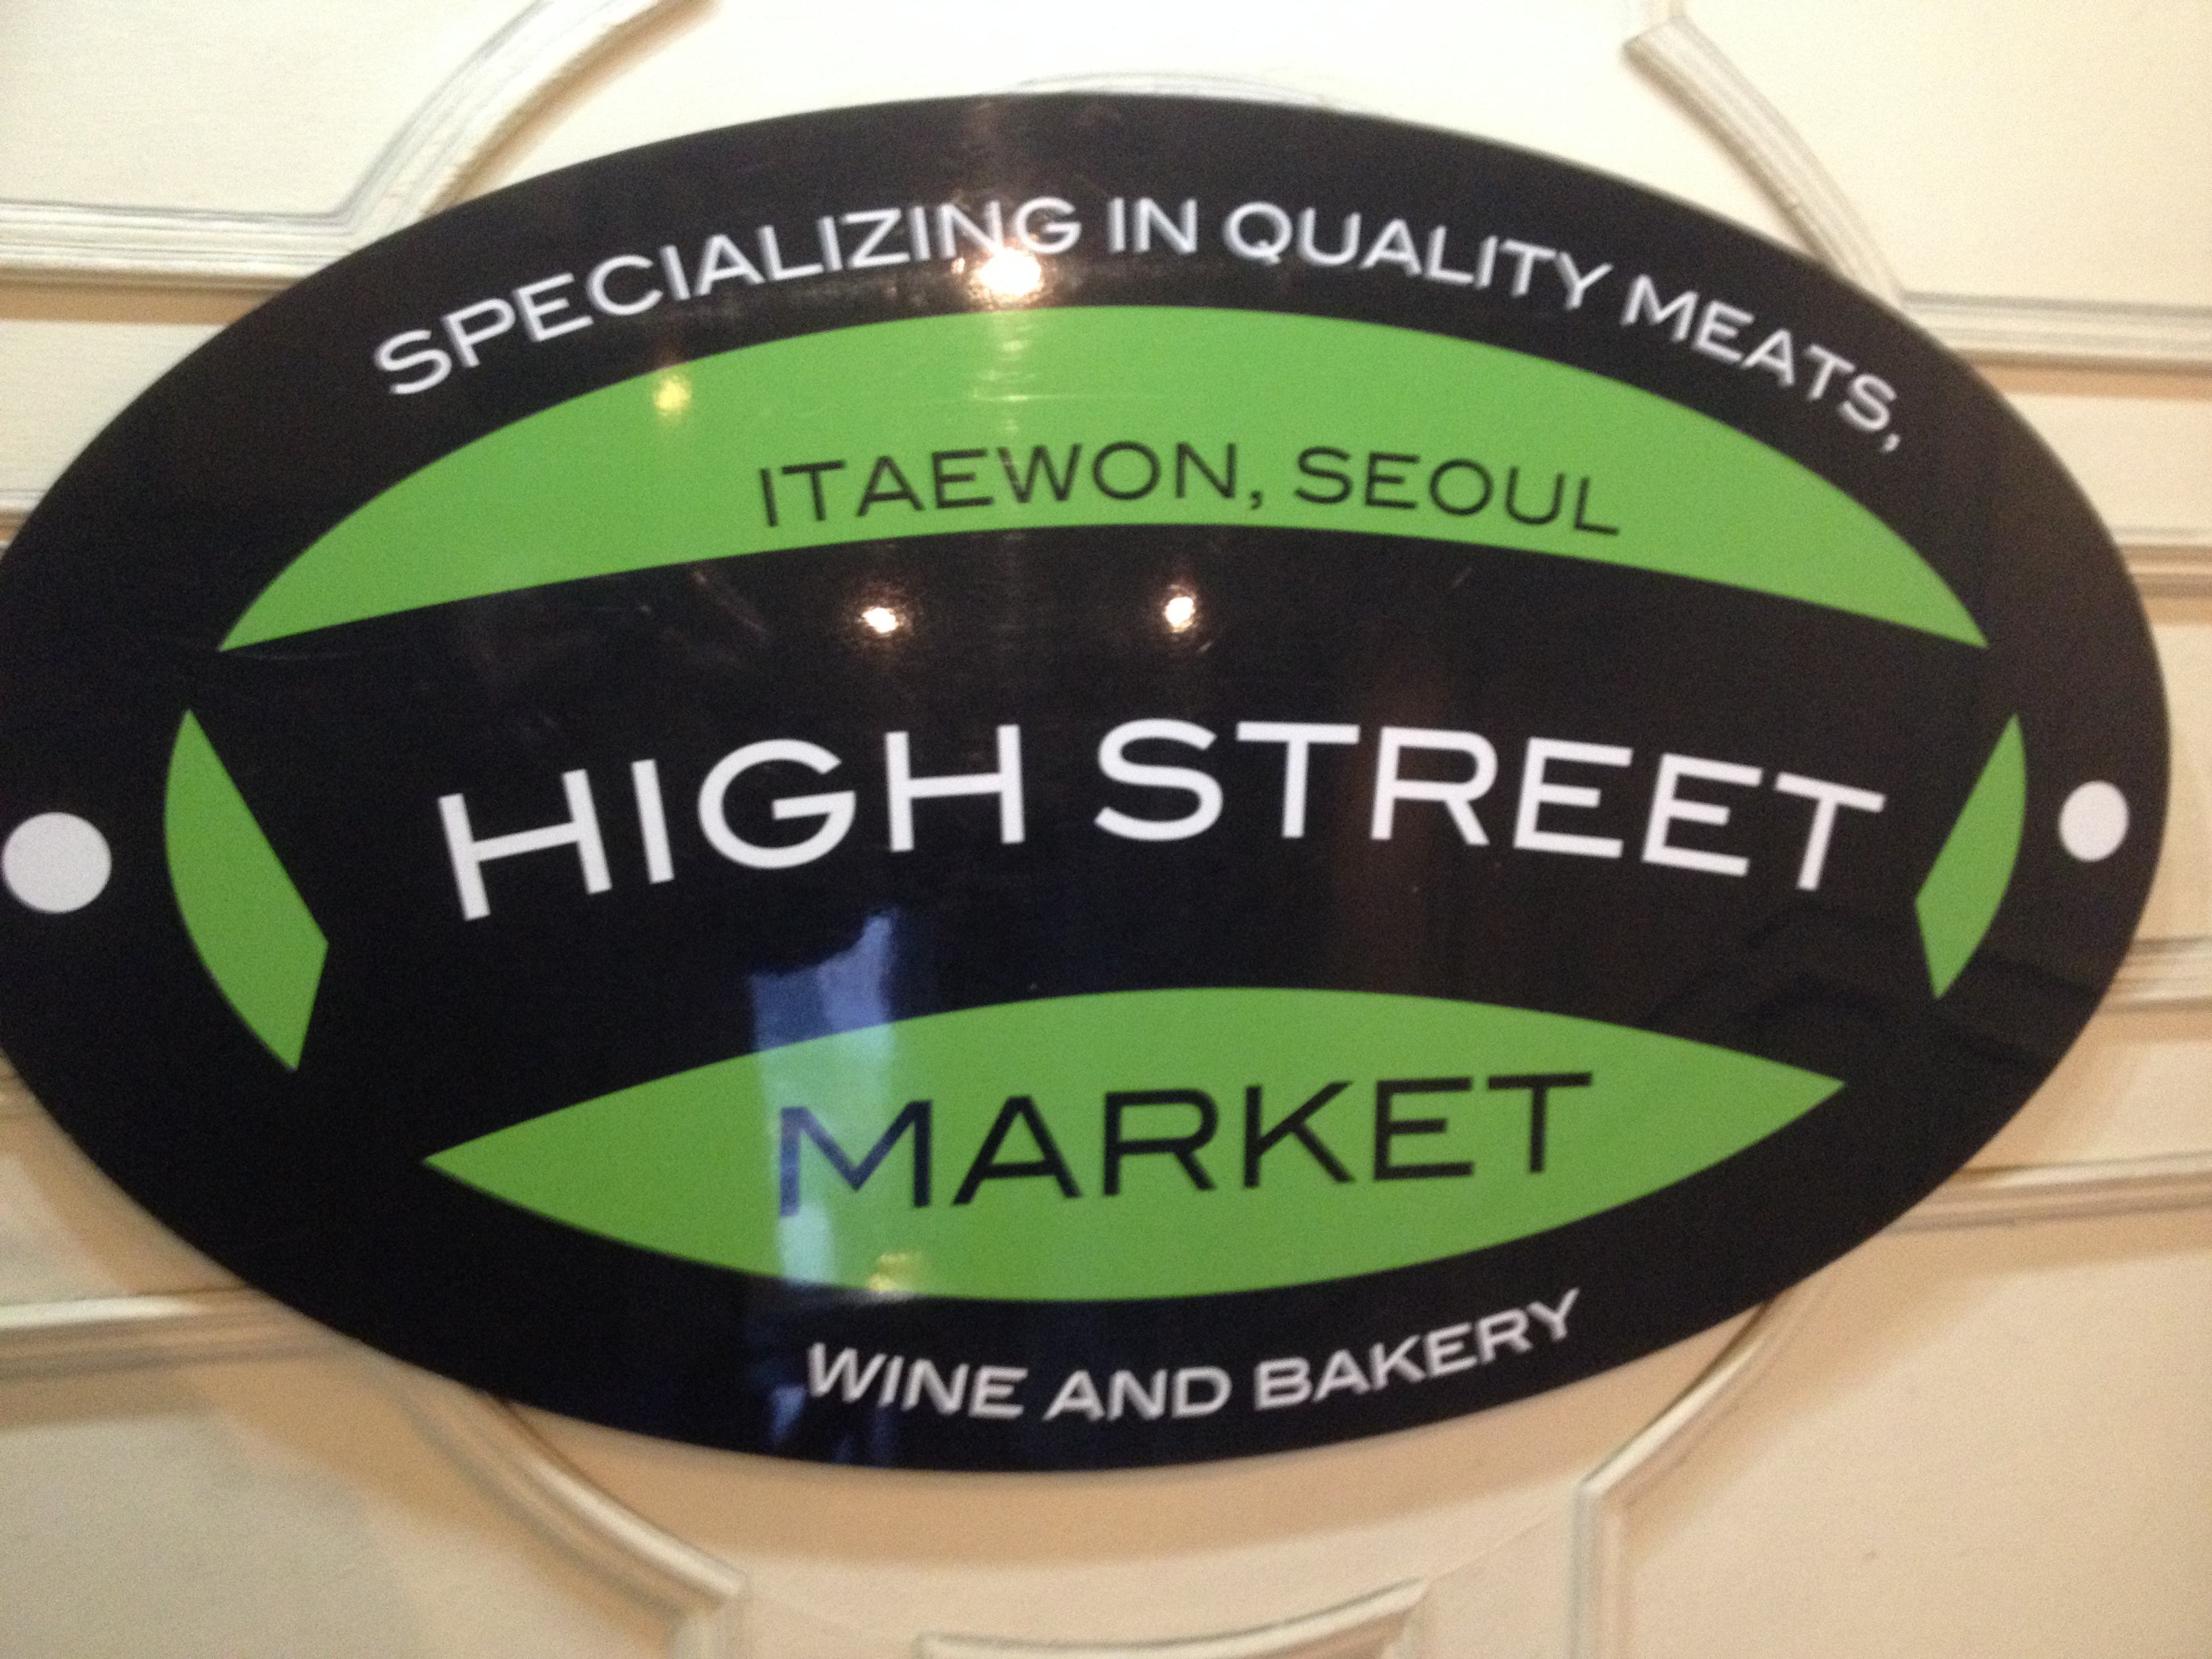 High Street Market in Itaewon – Importers of Western Ingredients and